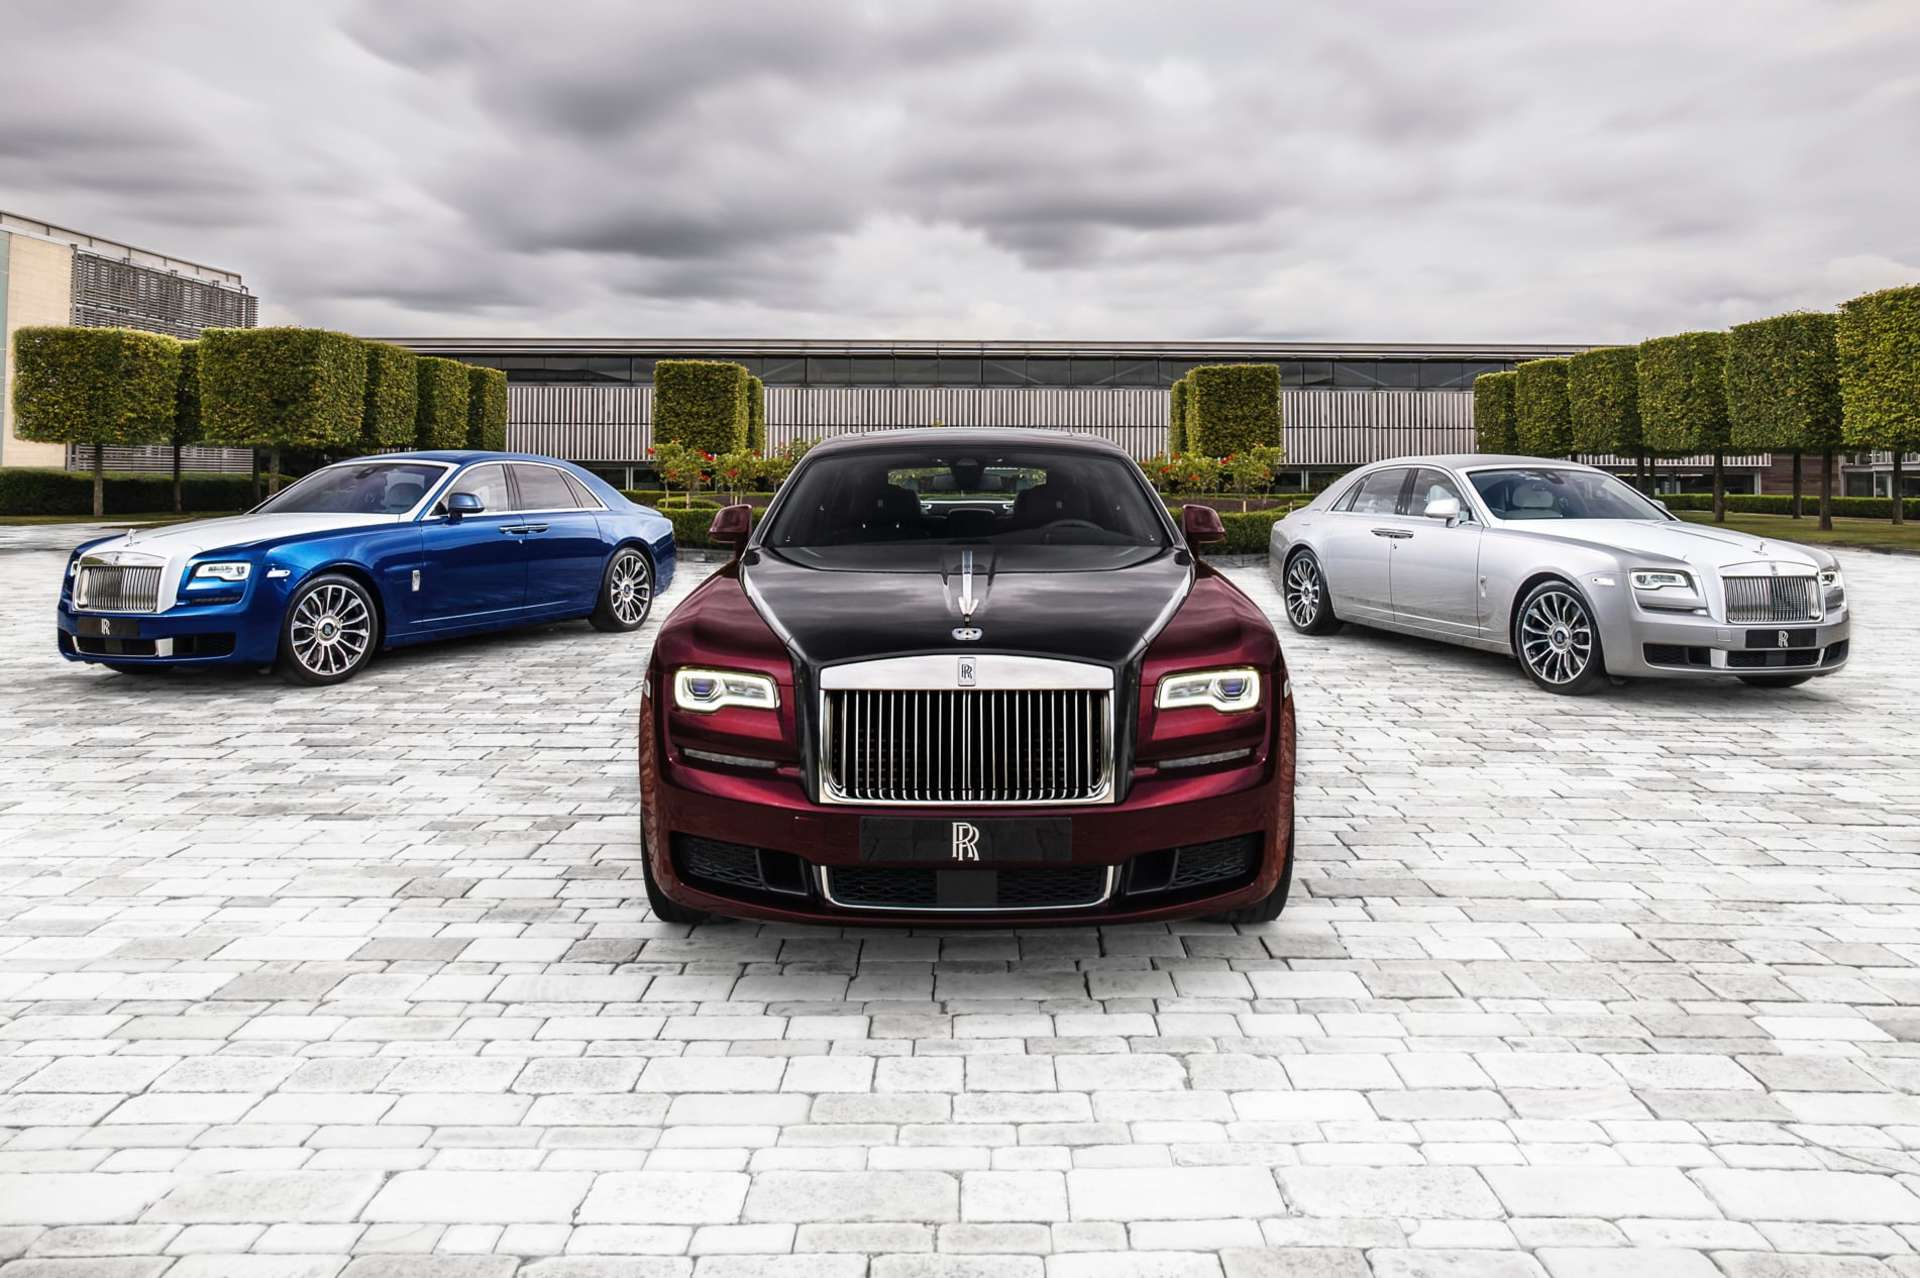 Exterior shot of the Rolls-Royce Ghost Zenith collection